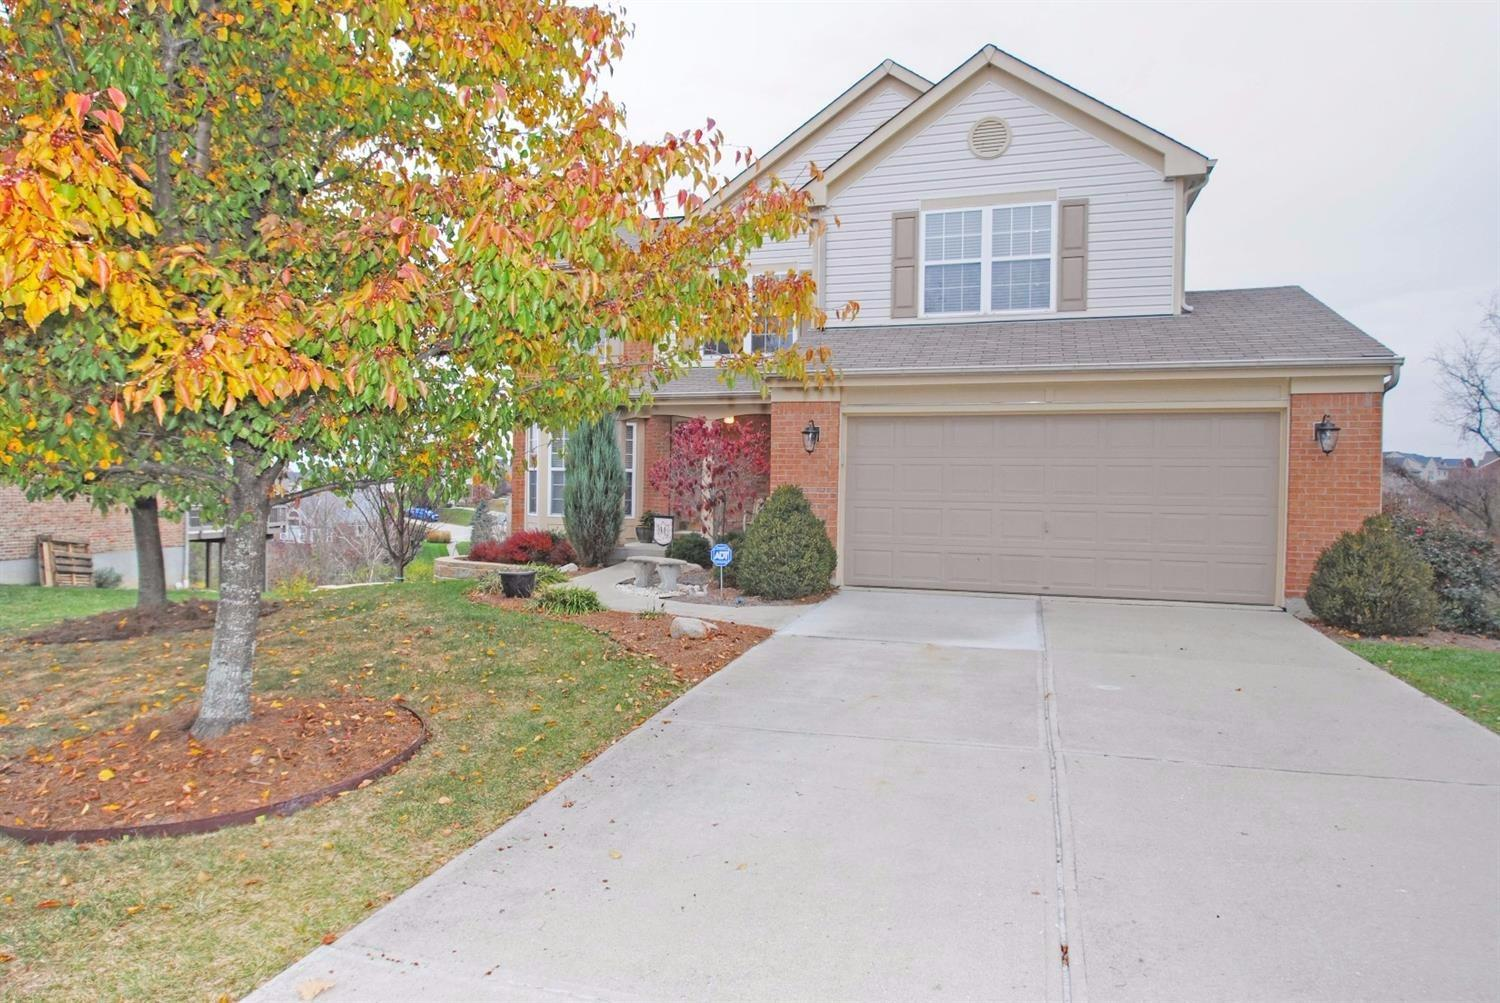 Photo 1 for 1079 Rivermeade Dr Hebron, KY 41048